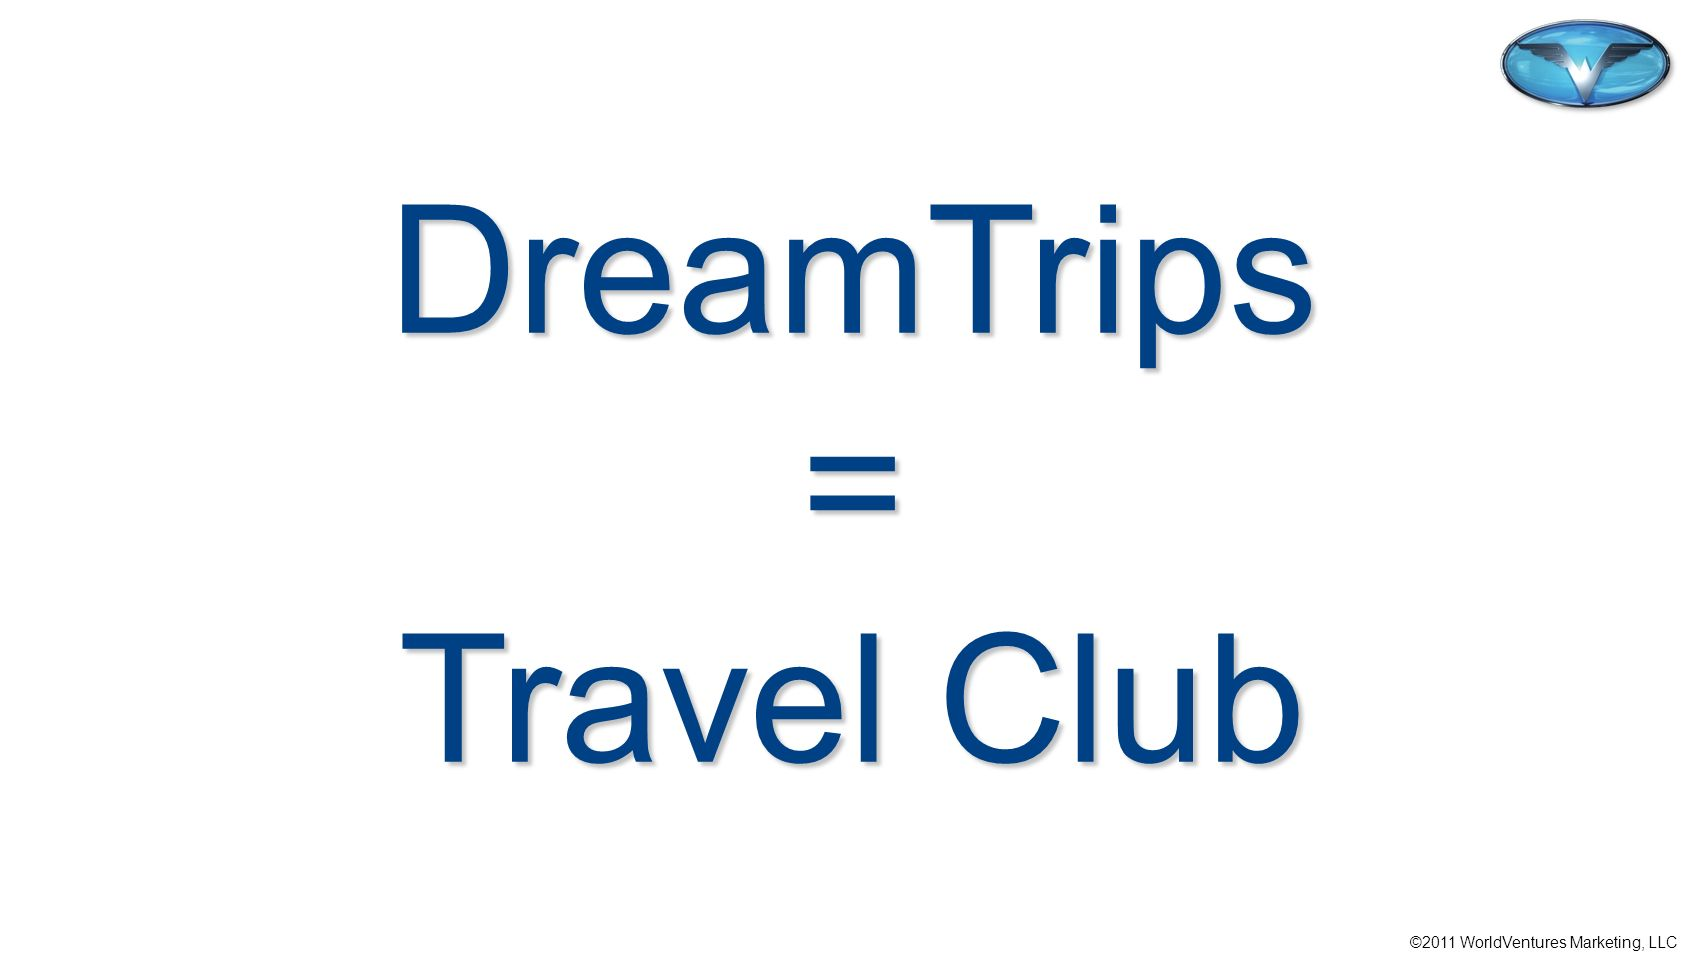 DreamTrips = Travel Club